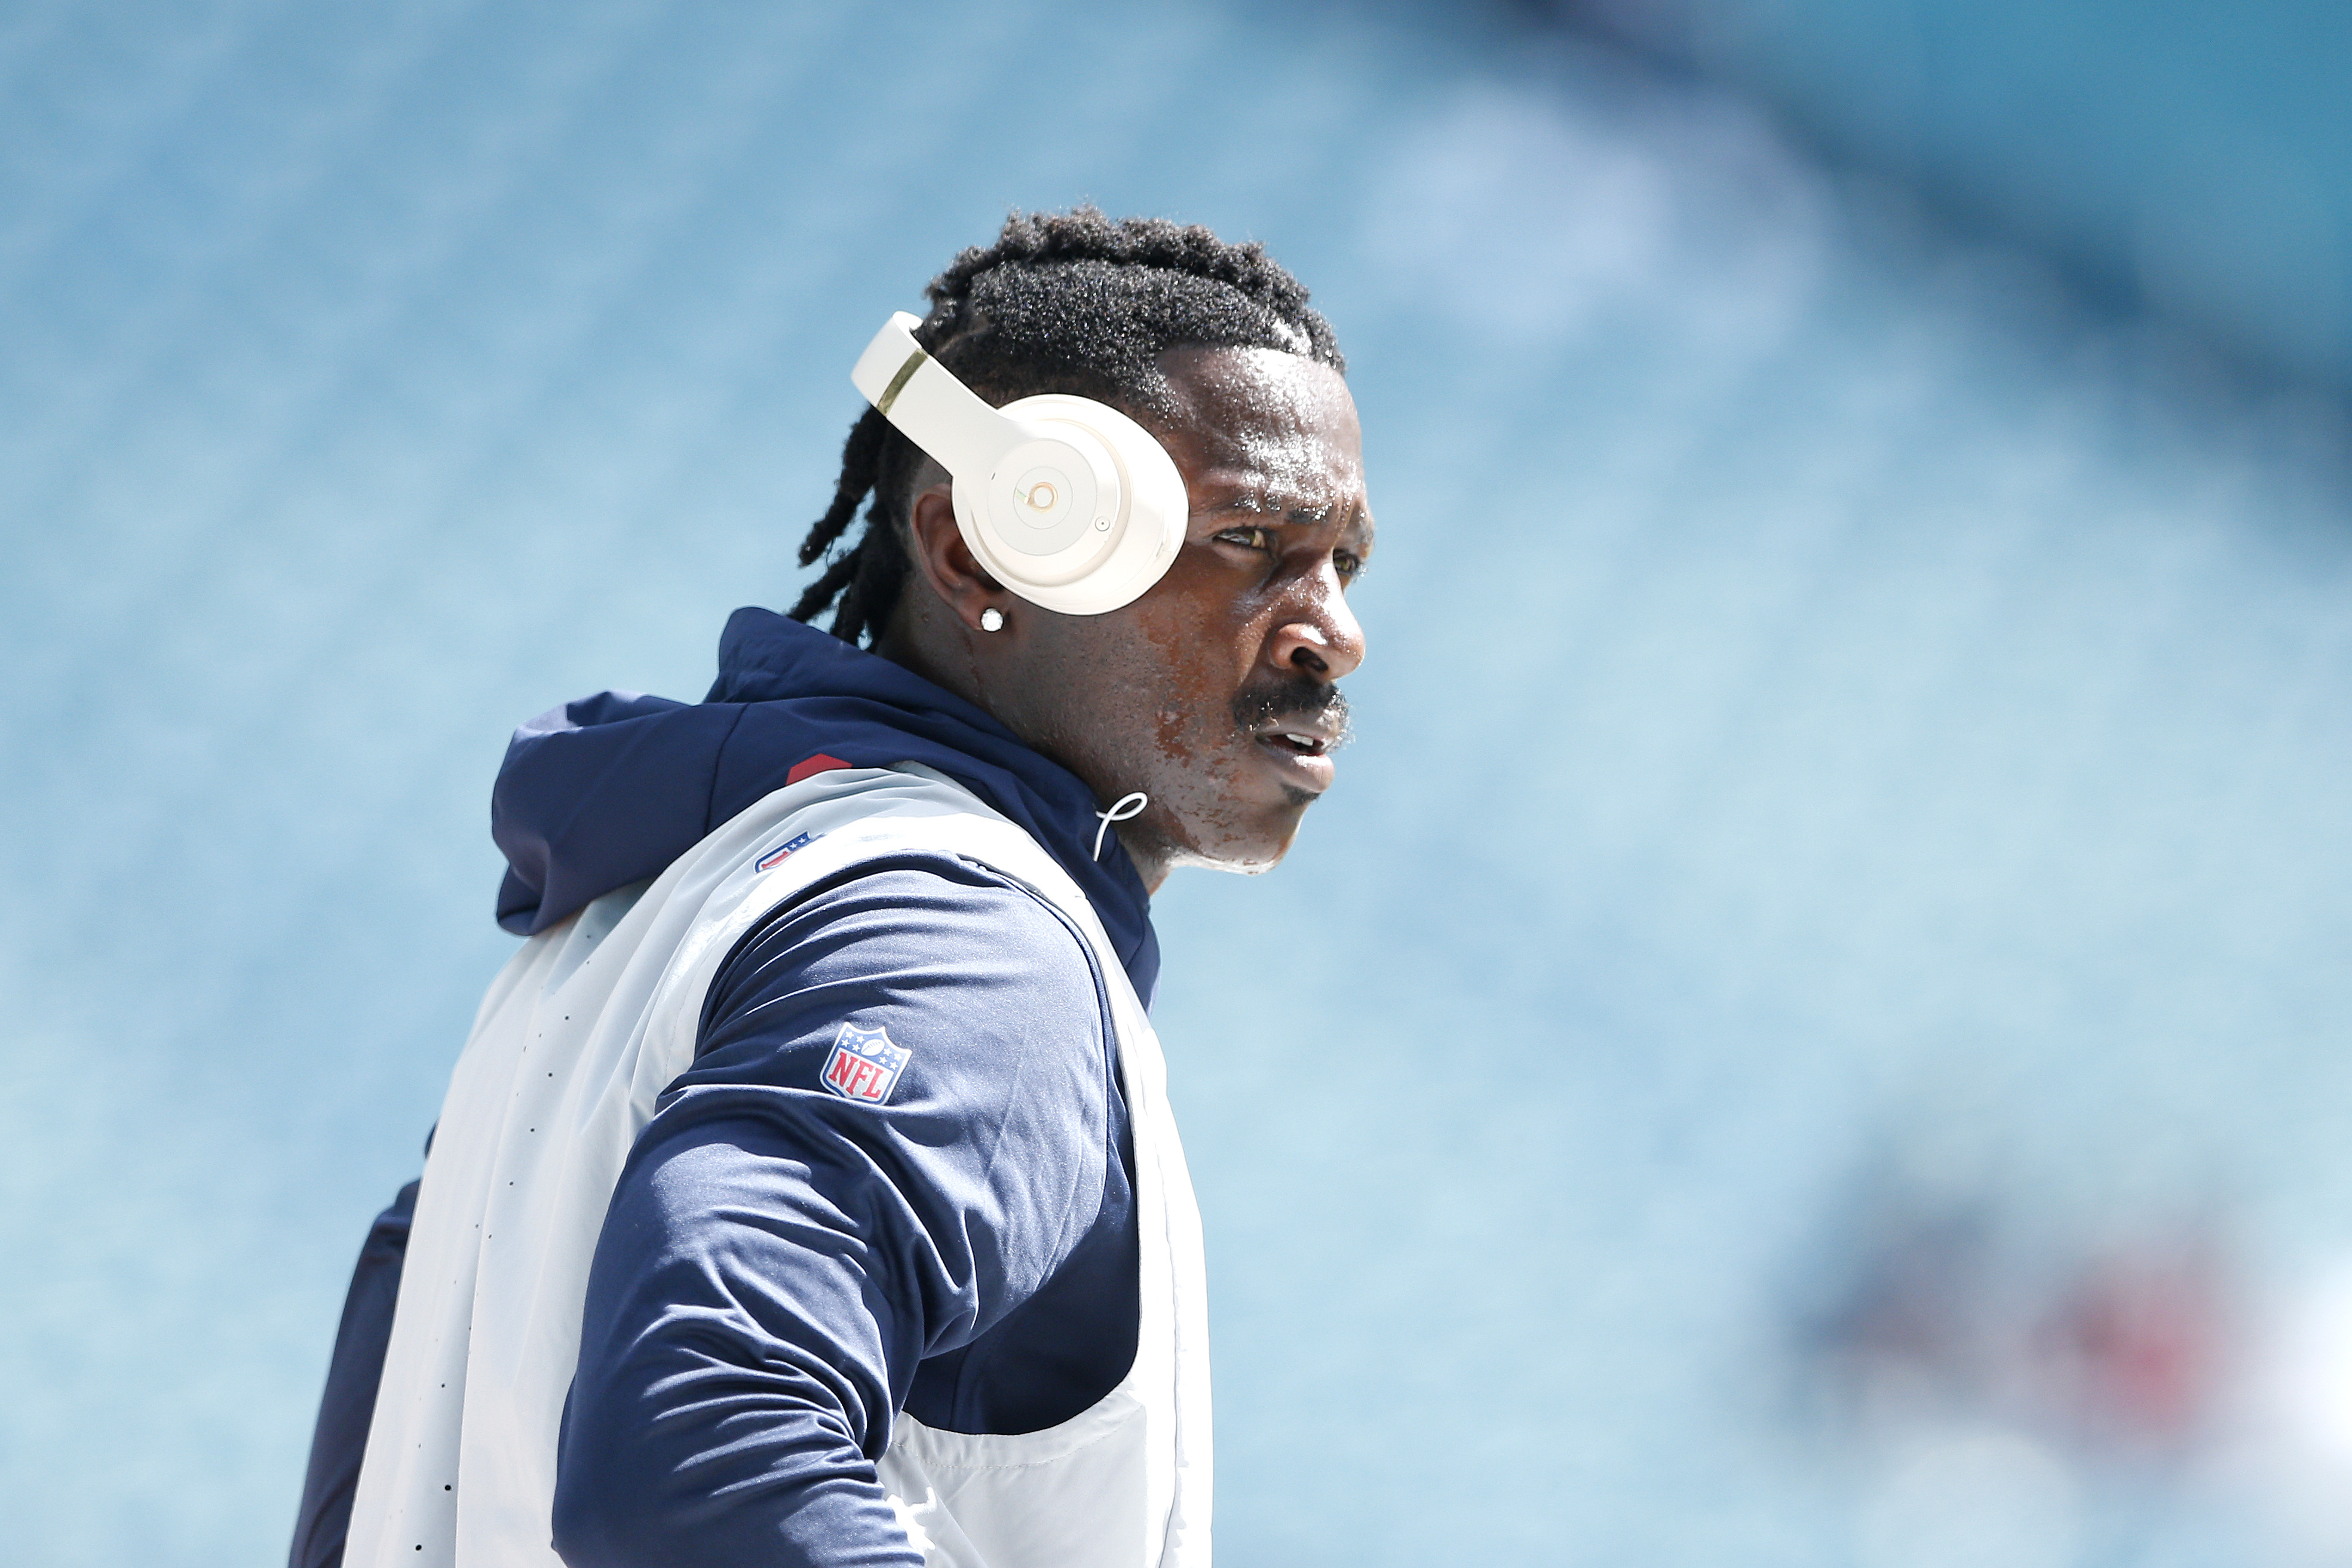 'Keep praying for me': Antonio Brown talks New England Patriots, NFL, XFL in Instagram Live